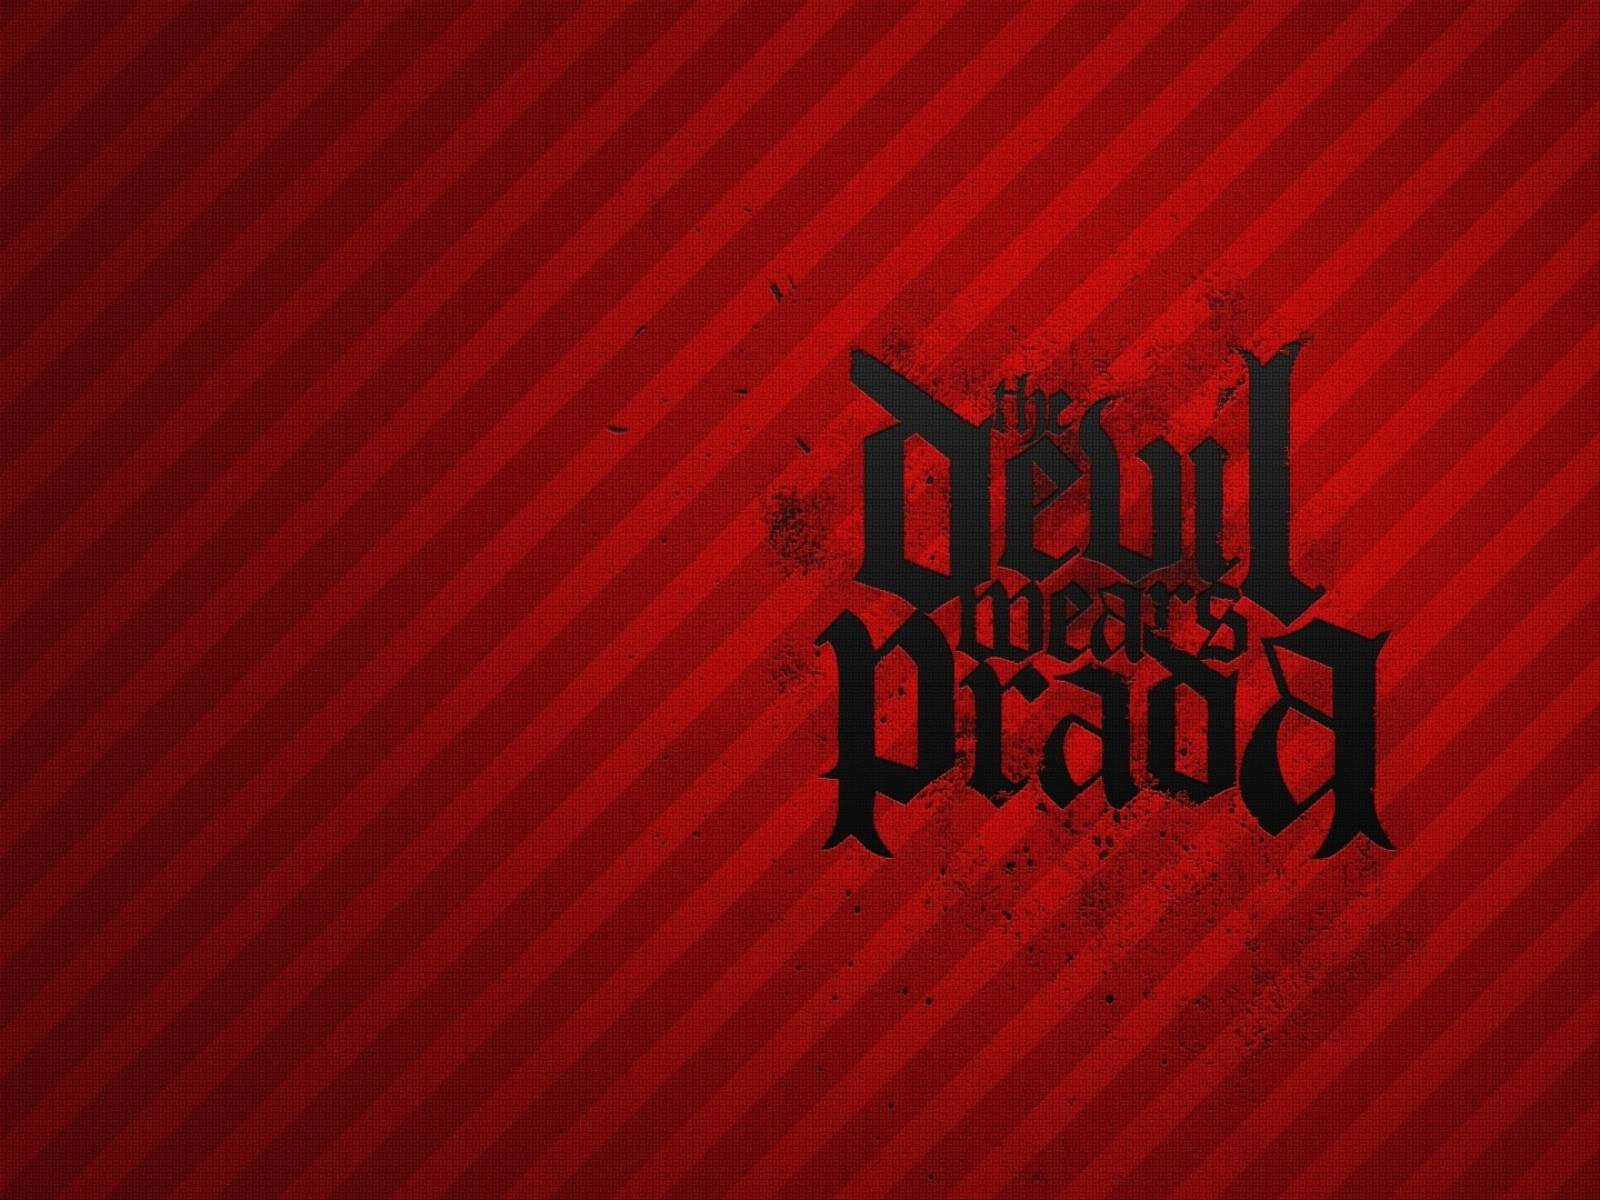 The Devil Wears Prada Wallpaper - The Devil Wears Prada Wallpaper